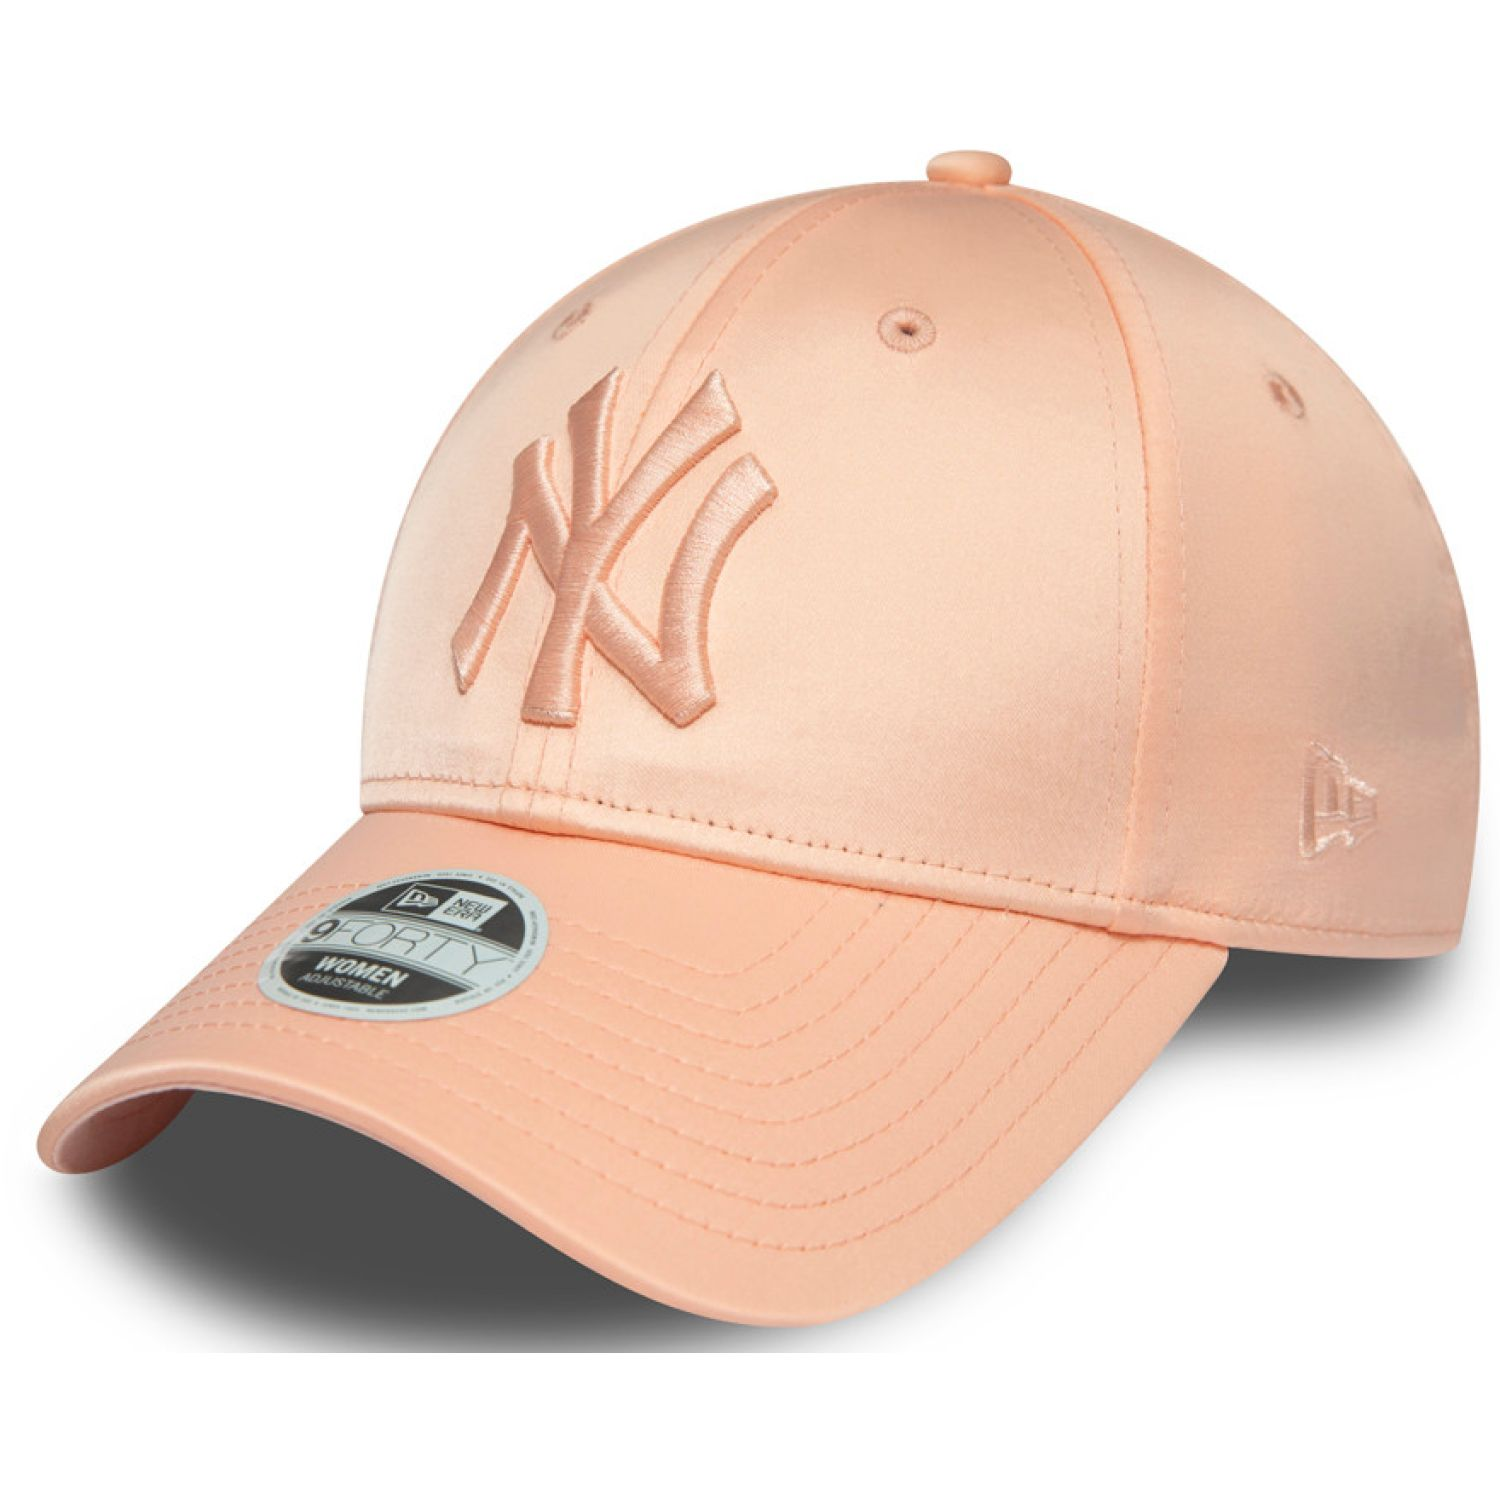 NEW ERA Womens Mlb Satin 9forty Neyyan Blh Pink Chullos y gorros